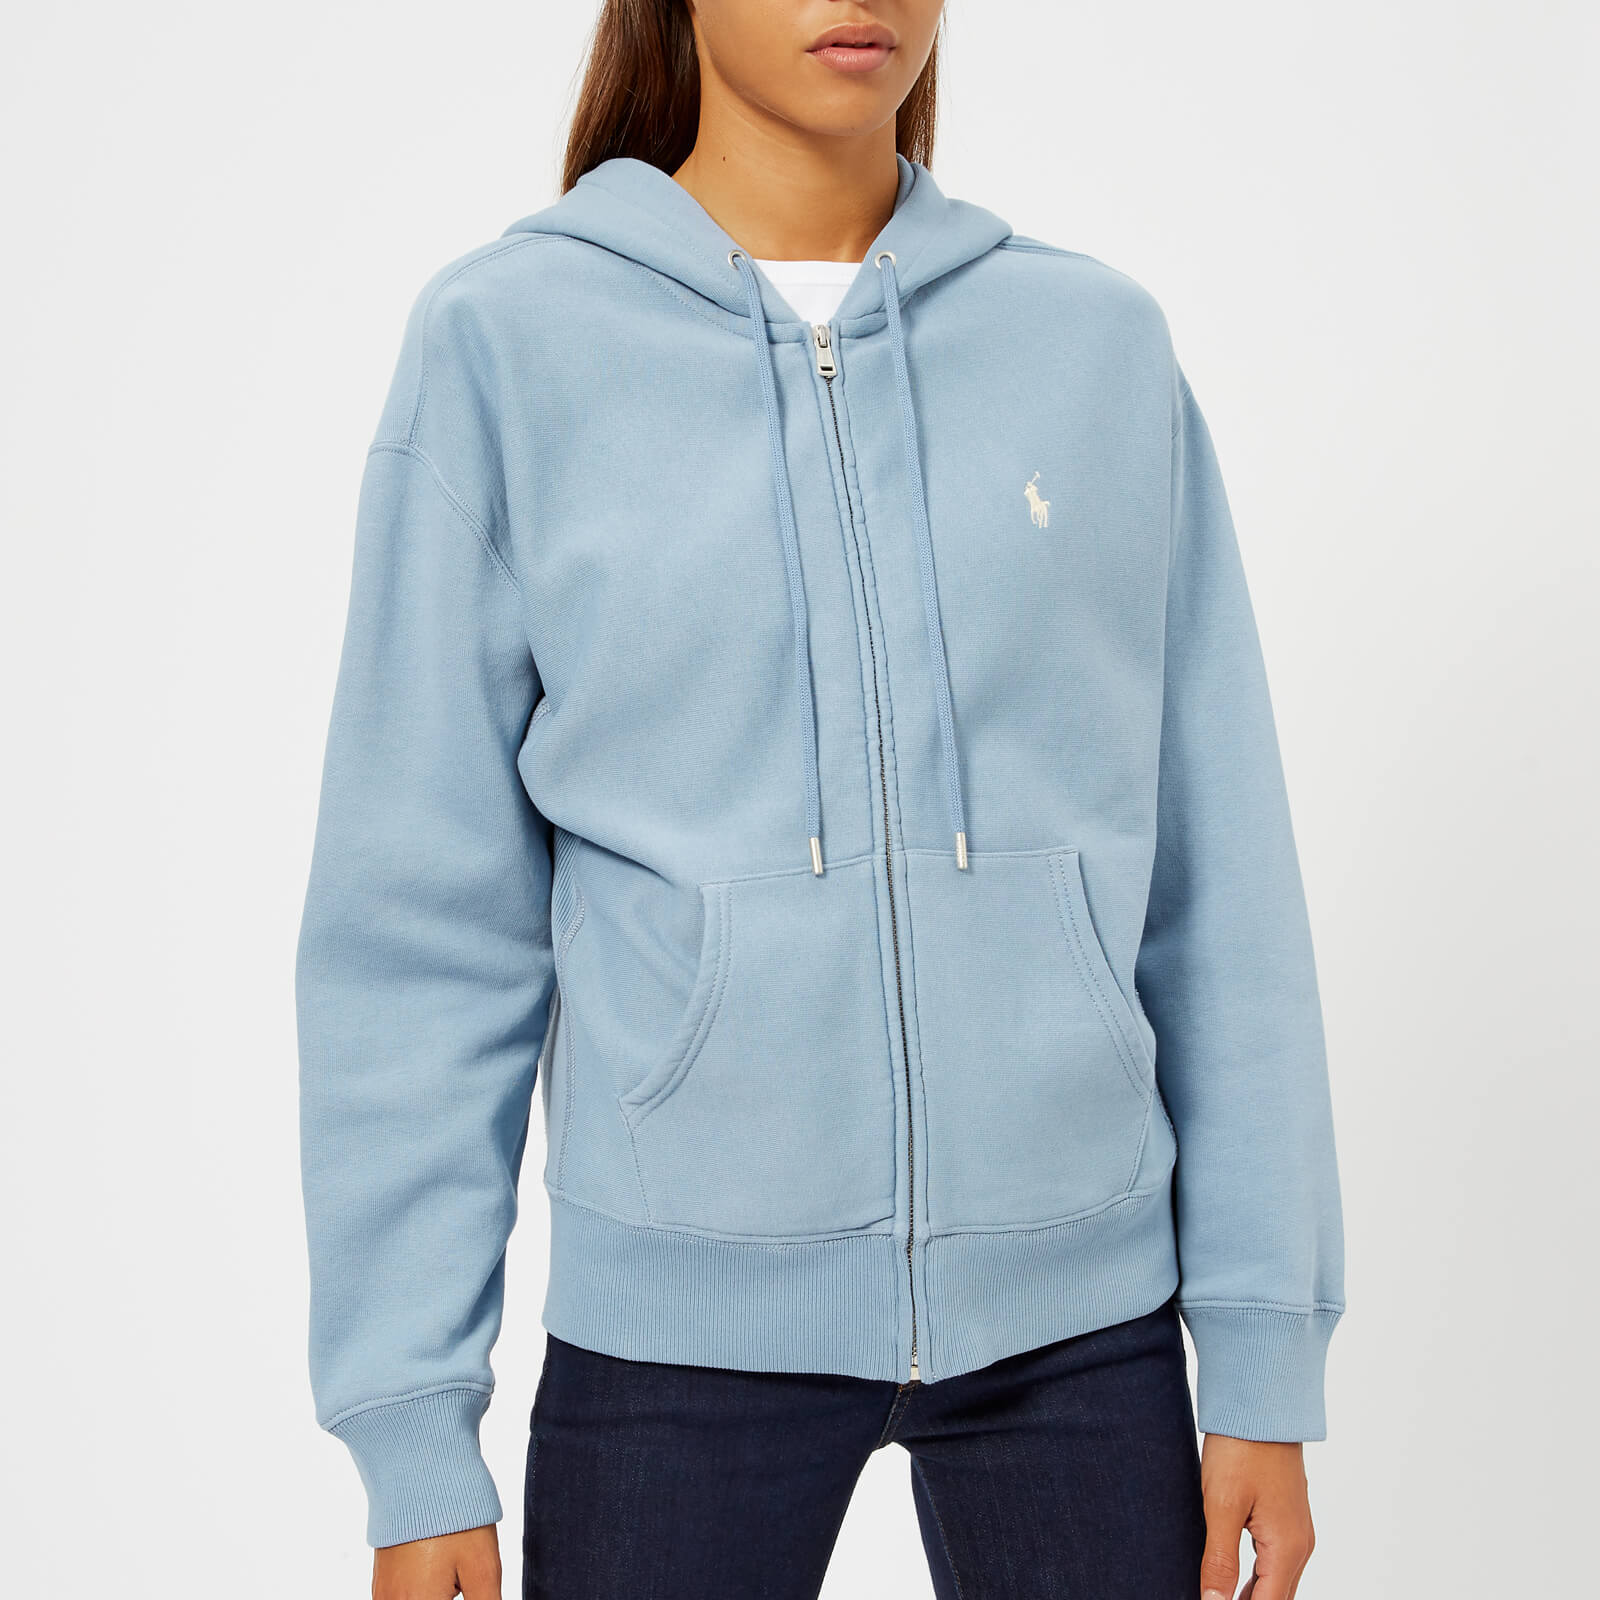 22737939d11 Polo Ralph Lauren Women s Logo Zip Through Hooded Top - Channel Blue - Free  UK Delivery over £50